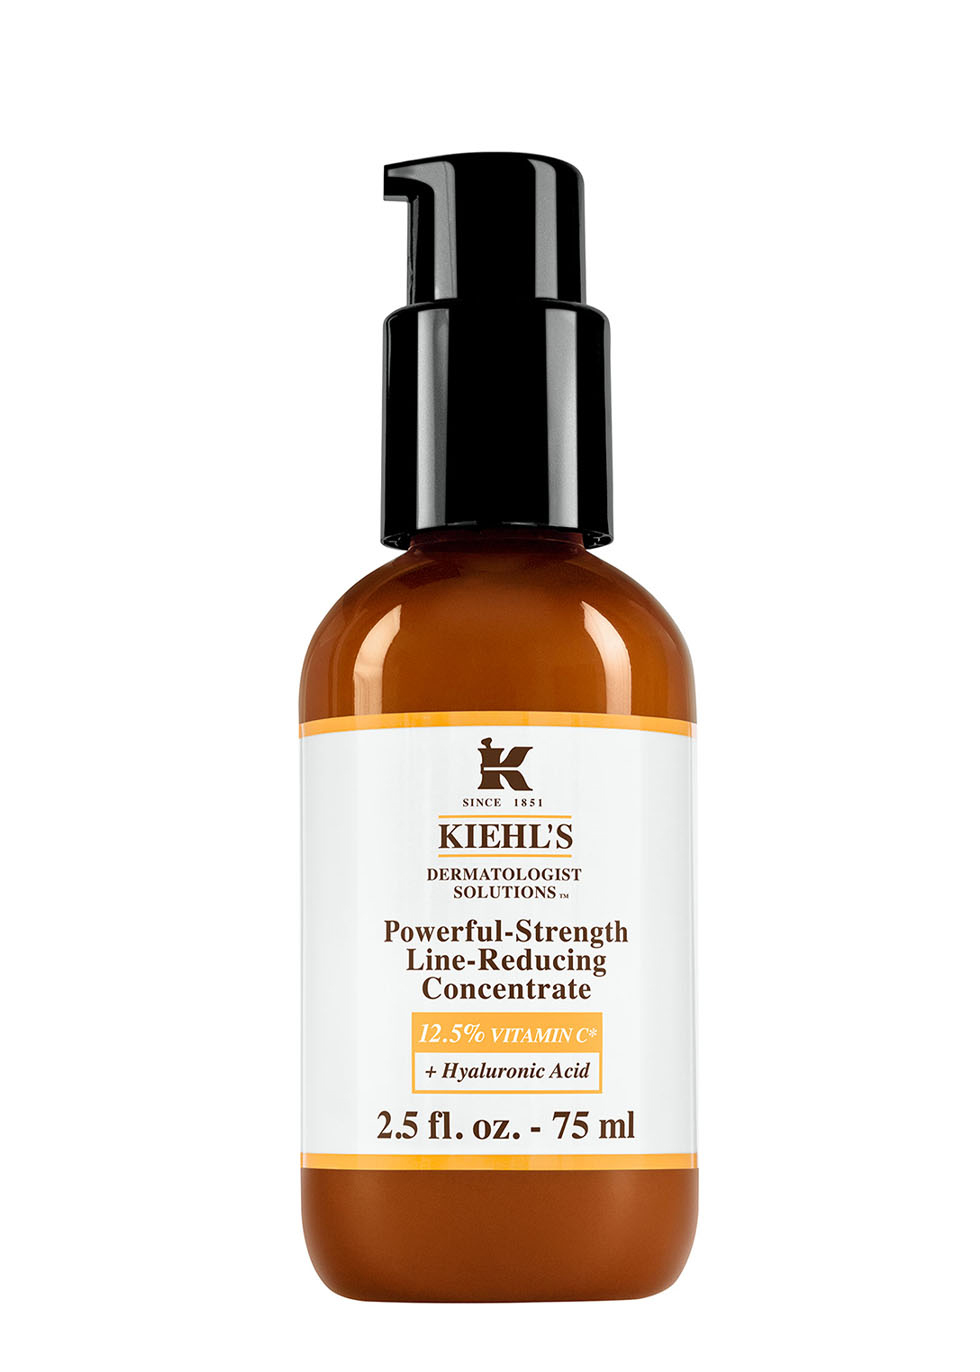 Powerful-Strength Line-Reducing Concentrate 75ml